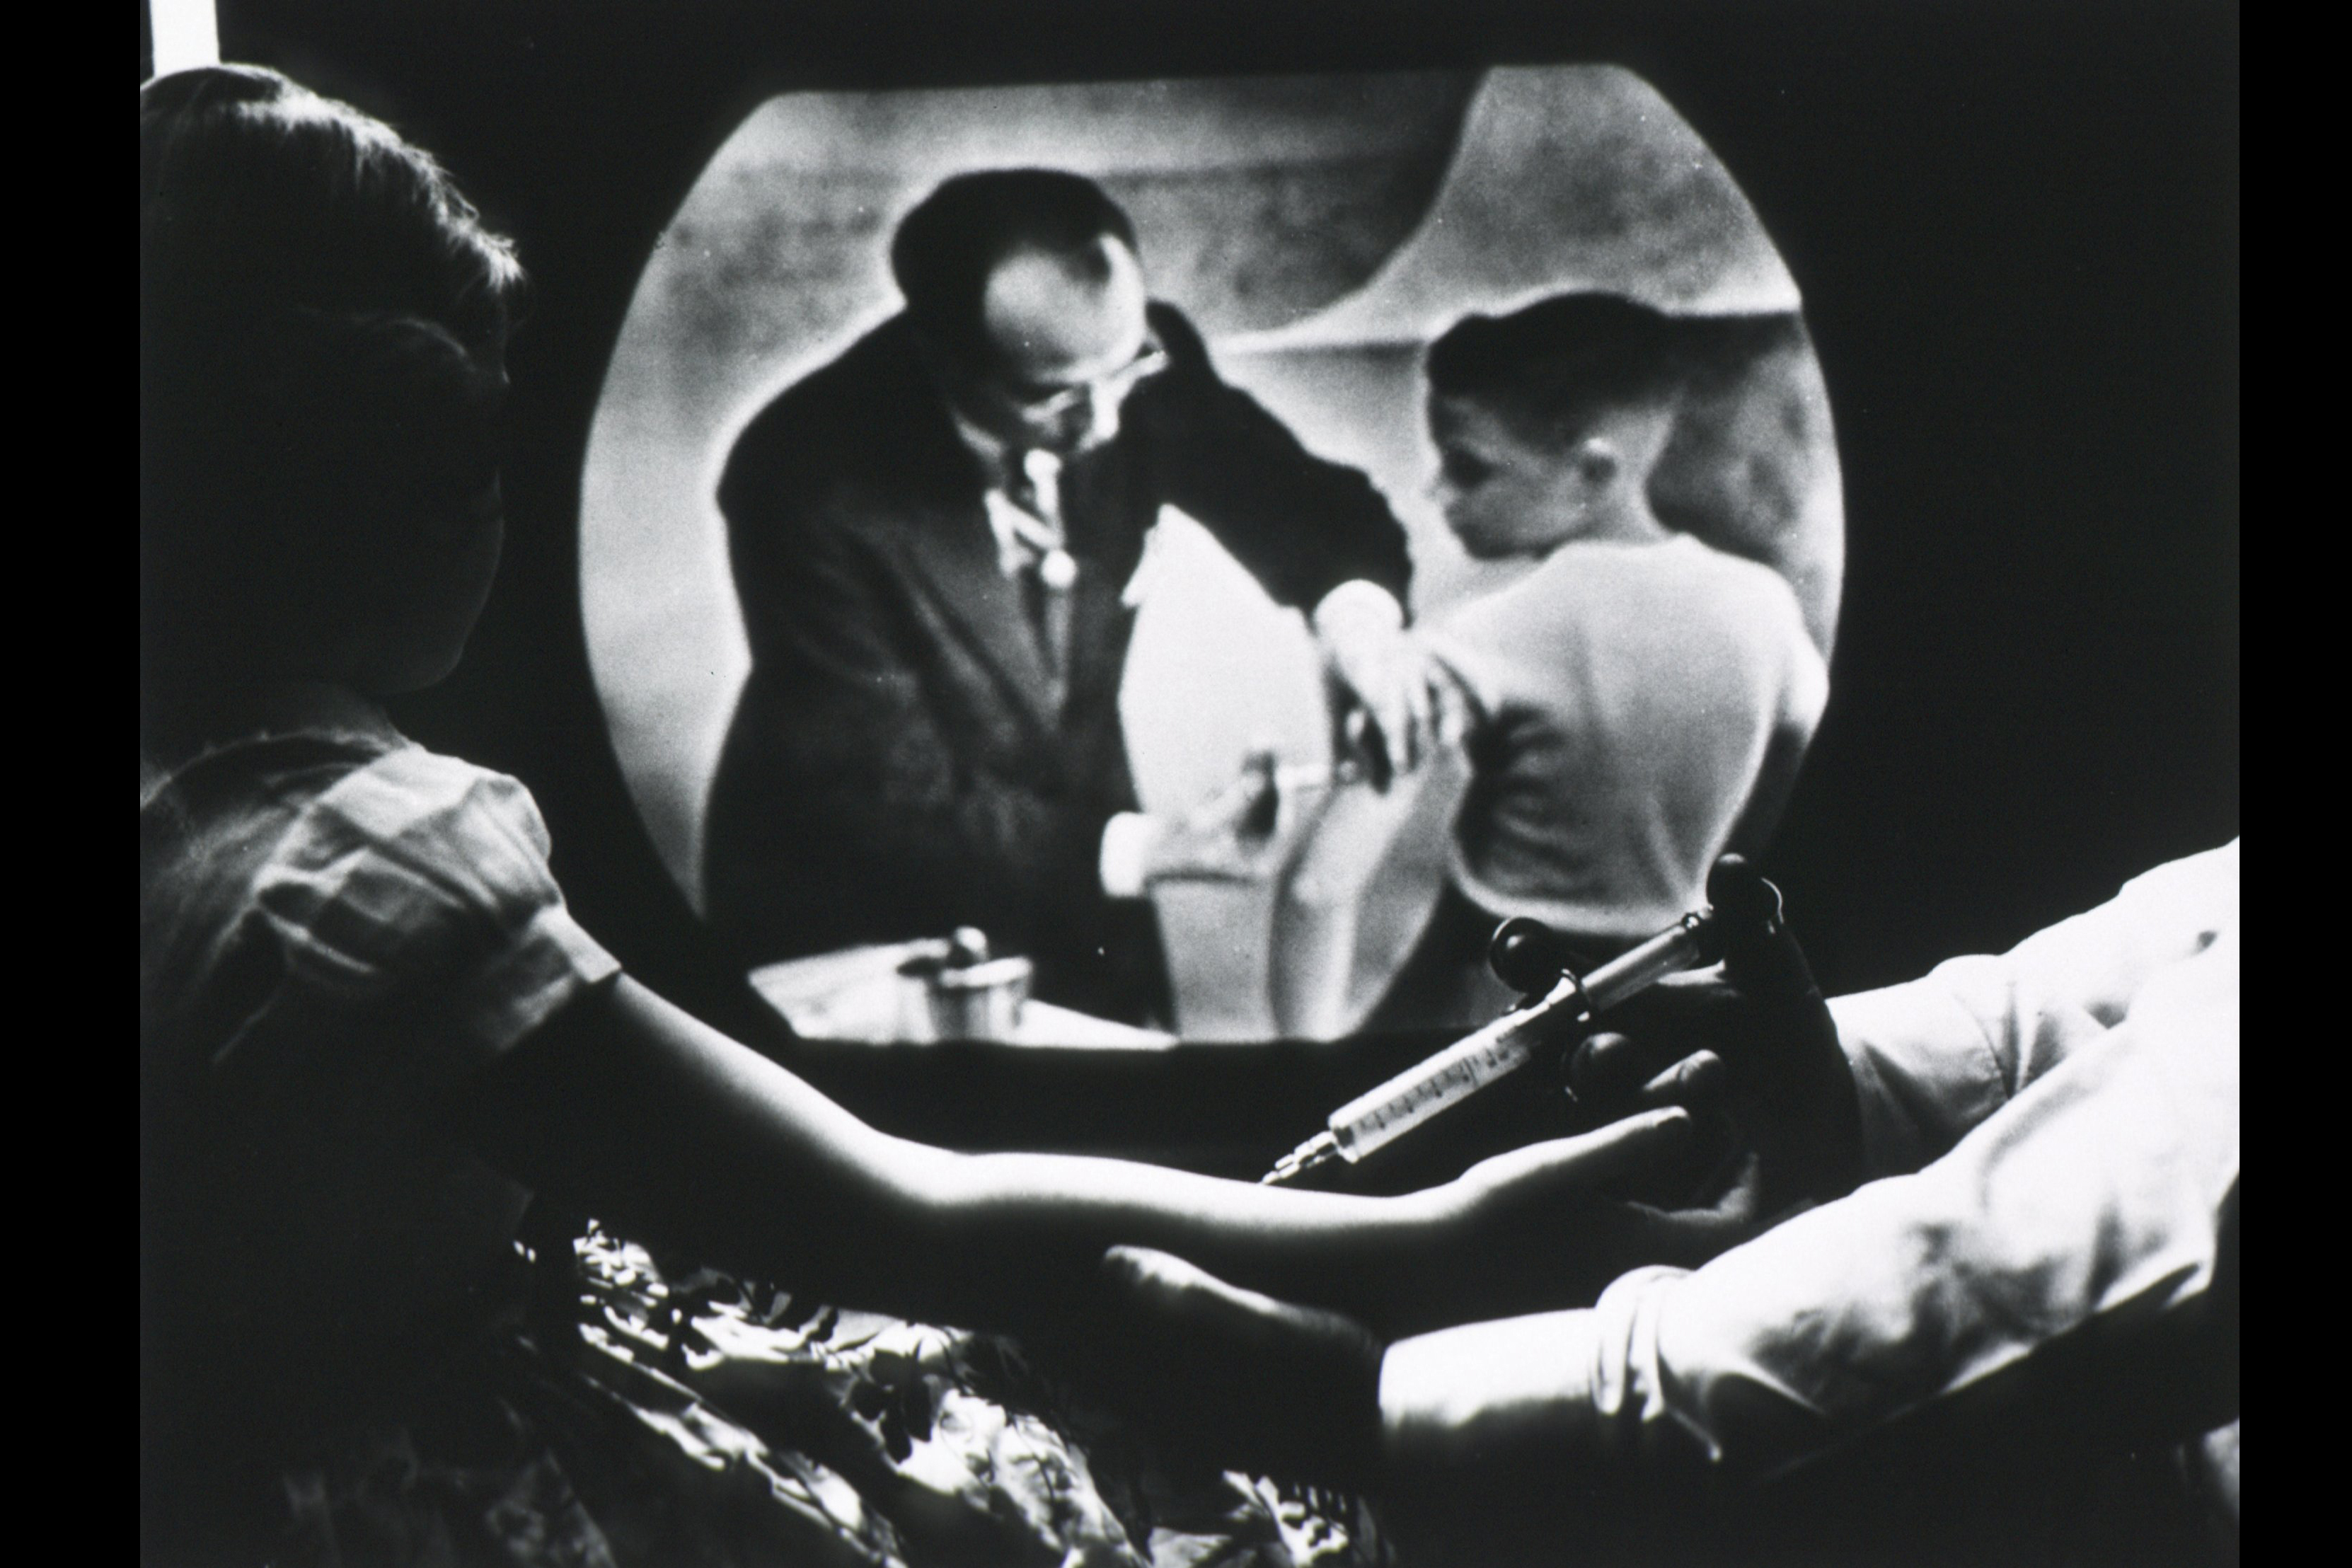 While receiving a polio vaccine, Cheryl Halpin watches Salk inoculate another child on television.